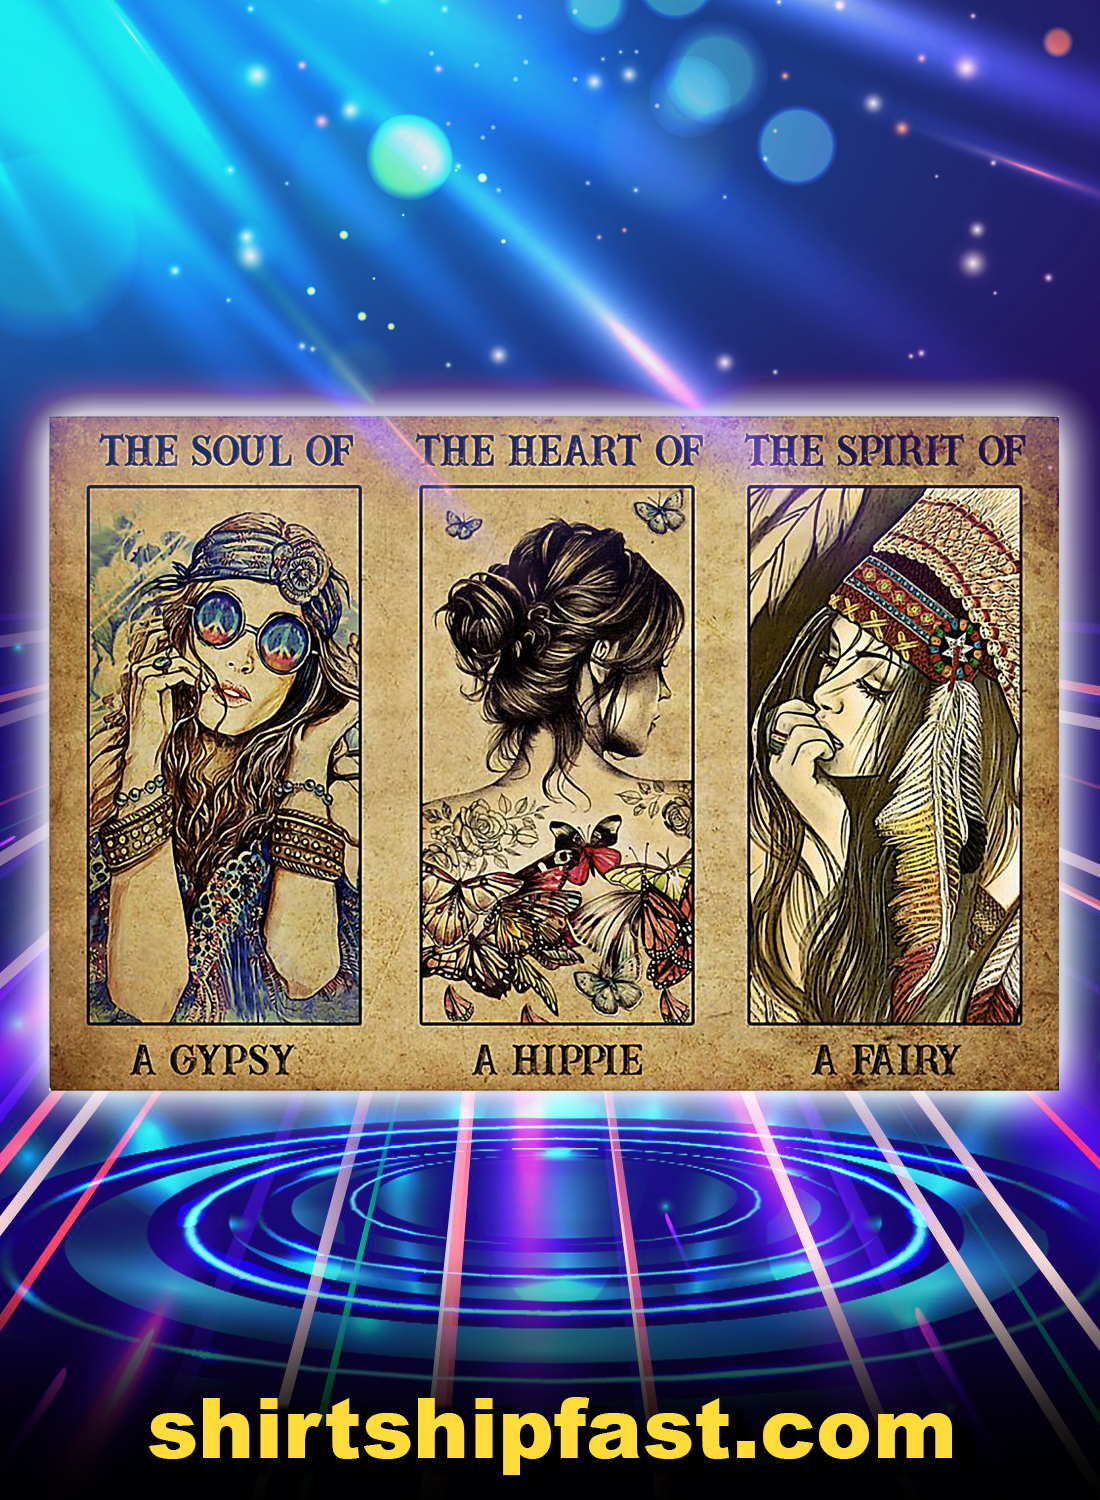 The soul of a gyspy the heart of a hippie the spirit of a fairy poster